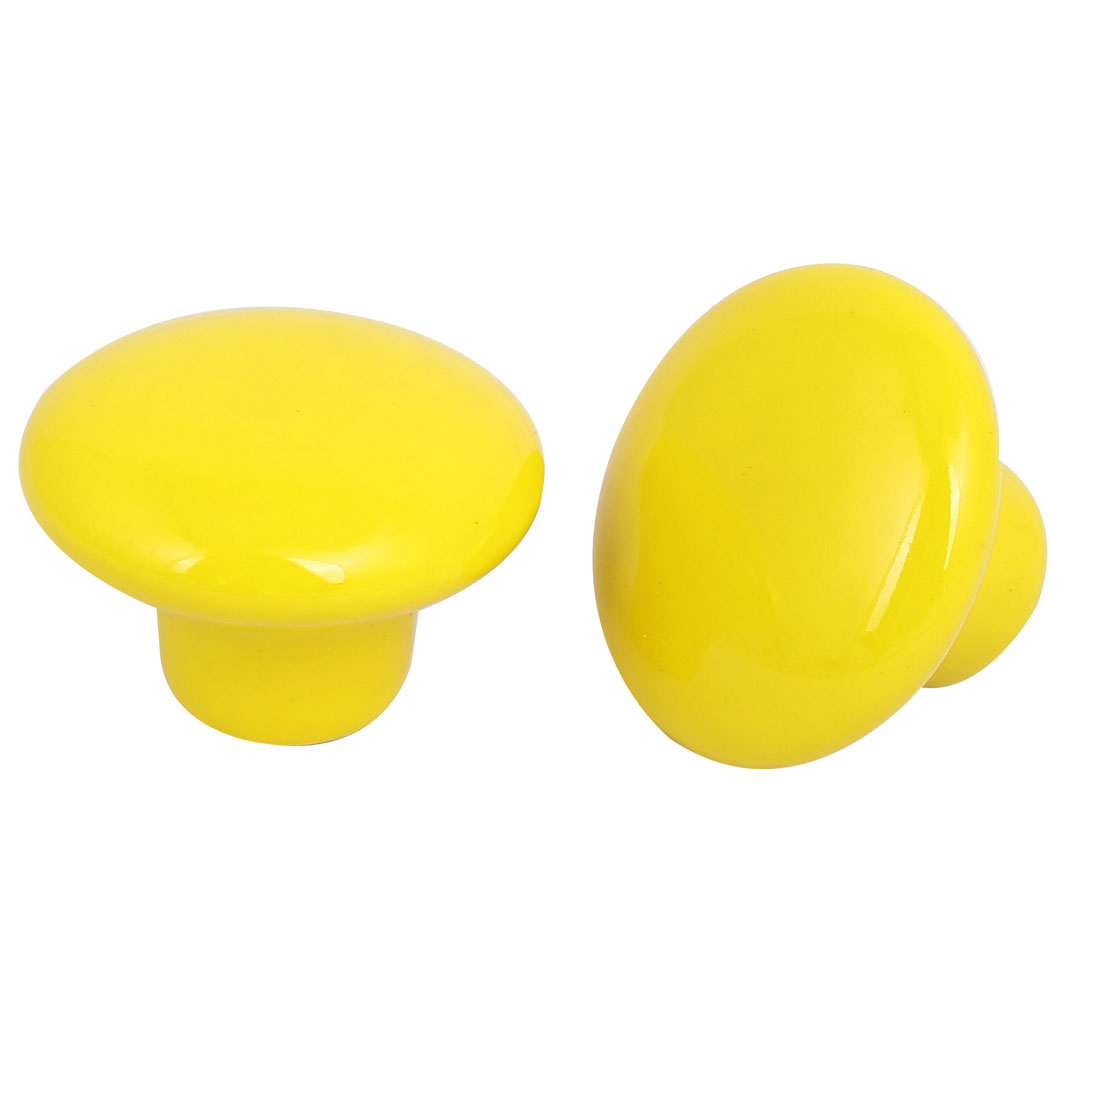 Wardrobe Cupboard Ceramic Round Pull Handles Knobs Yellow 38mm Dia 2pcs